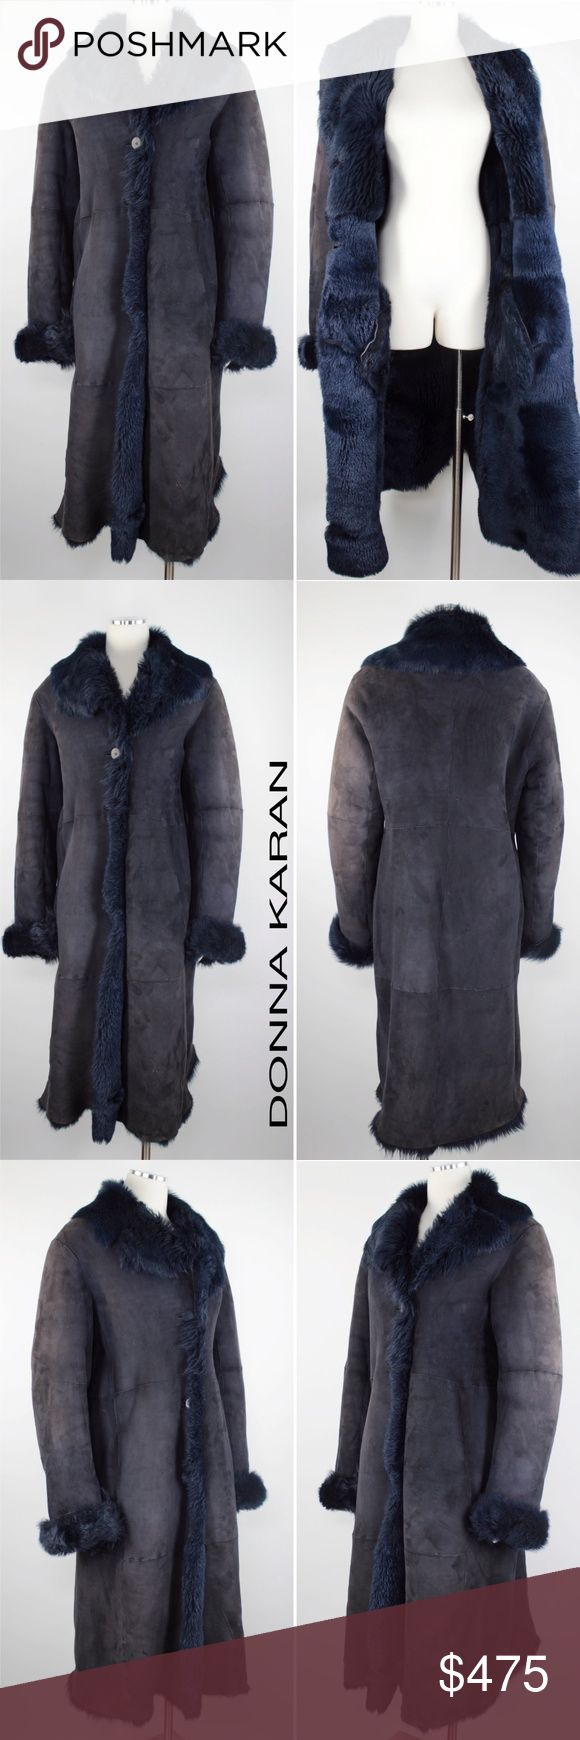 """Donna Karan Toscana Fur Lamb Shearling Duster 861 Donna Karan Signature Women's Coat Royal Blue Toscana Fur  Lamb Leather Shearling Duster Coat.  Hidden Front Pockets. 3 Button.  Can be Cuffed Retails $2,500 Size: M Medium  Shoulder: 19.5""""  Sleeves: 28""""  Pit to Pit: 21.5""""  Length: 45.5""""  Condition: Loved. There is a tear near the front hem.  Has slight discoloration on shoulder.  Priced Accordingly.  Material: 100% Lamb Shearling Cut #: 5590 Care: Dry Clean WT: 4 CSKU: 861; 8 All…"""